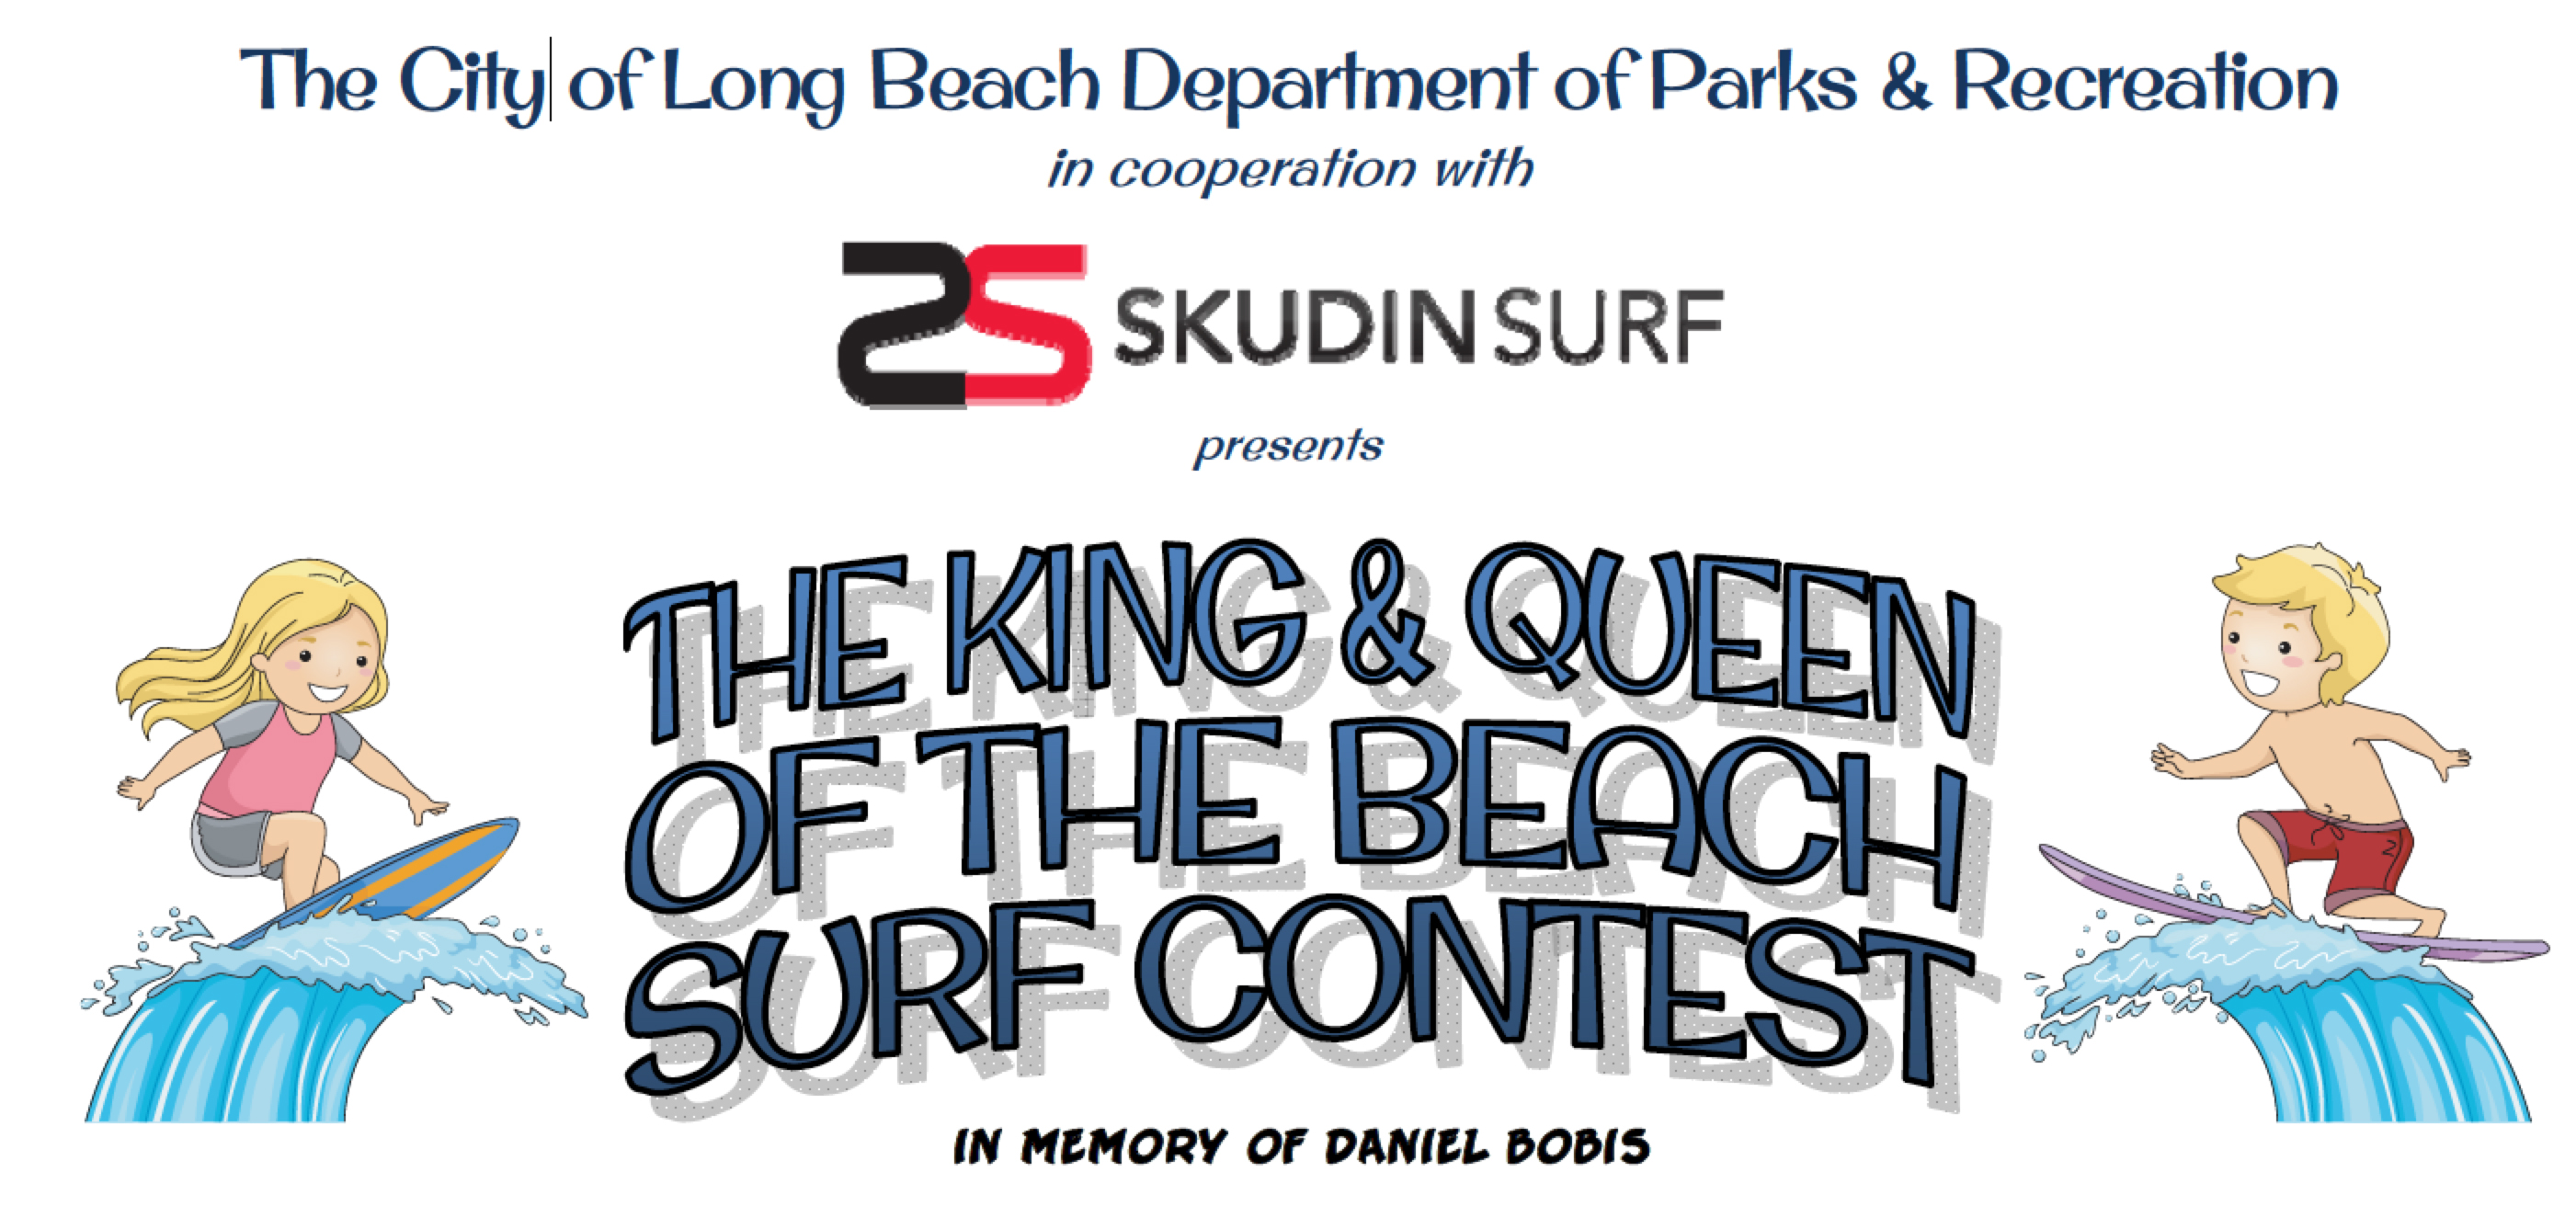 Long beach surfers association the official website of the long the 2014 king and queen of the beach contest presented by the city of long beach department of parks and recreation and skudin surf is on for sunday nvjuhfo Choice Image